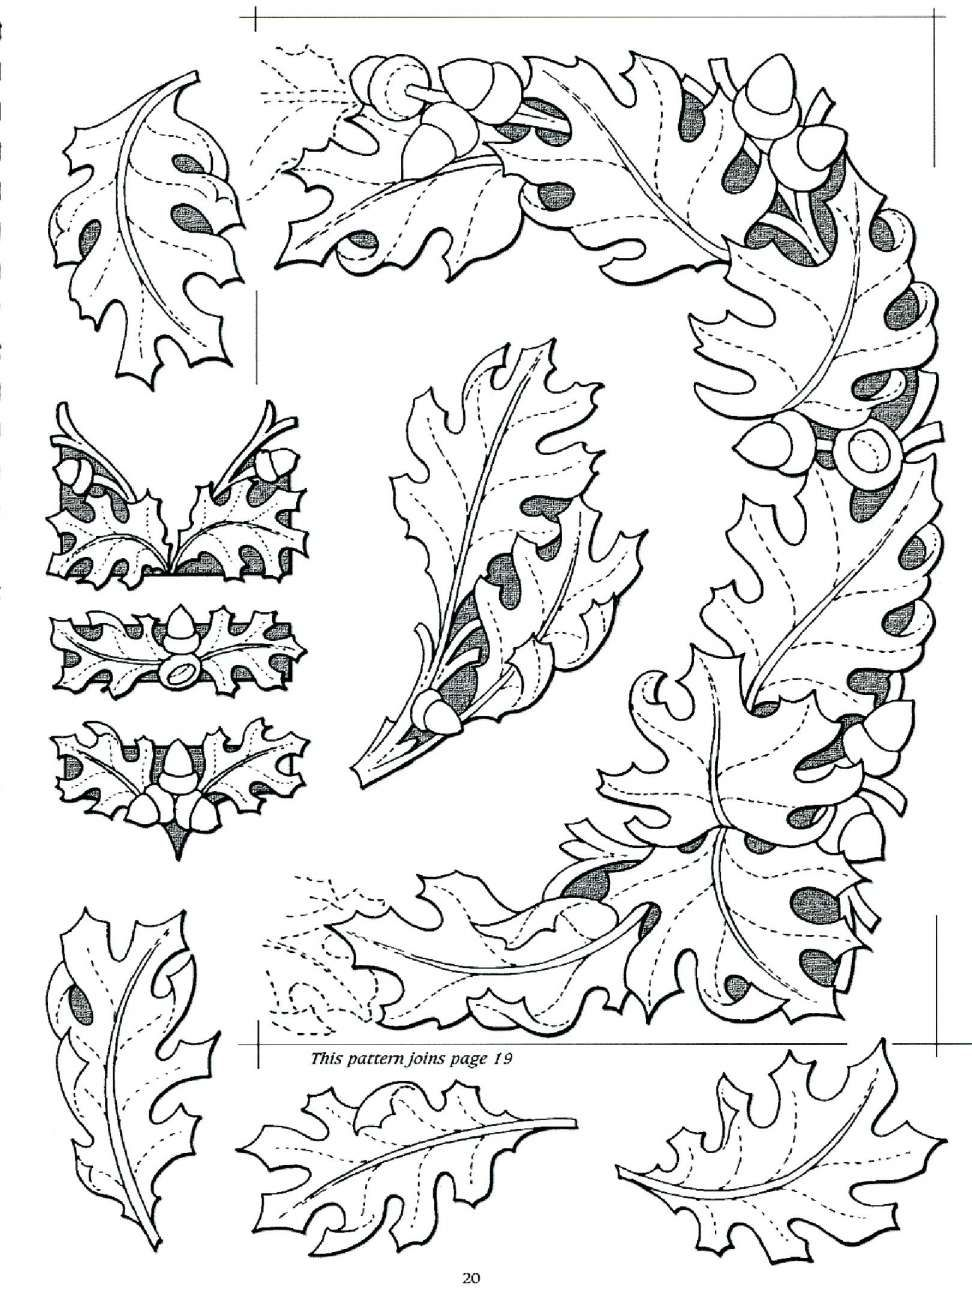 15+ Amazing Wood Carving Printout Patterns Gallery in 2020